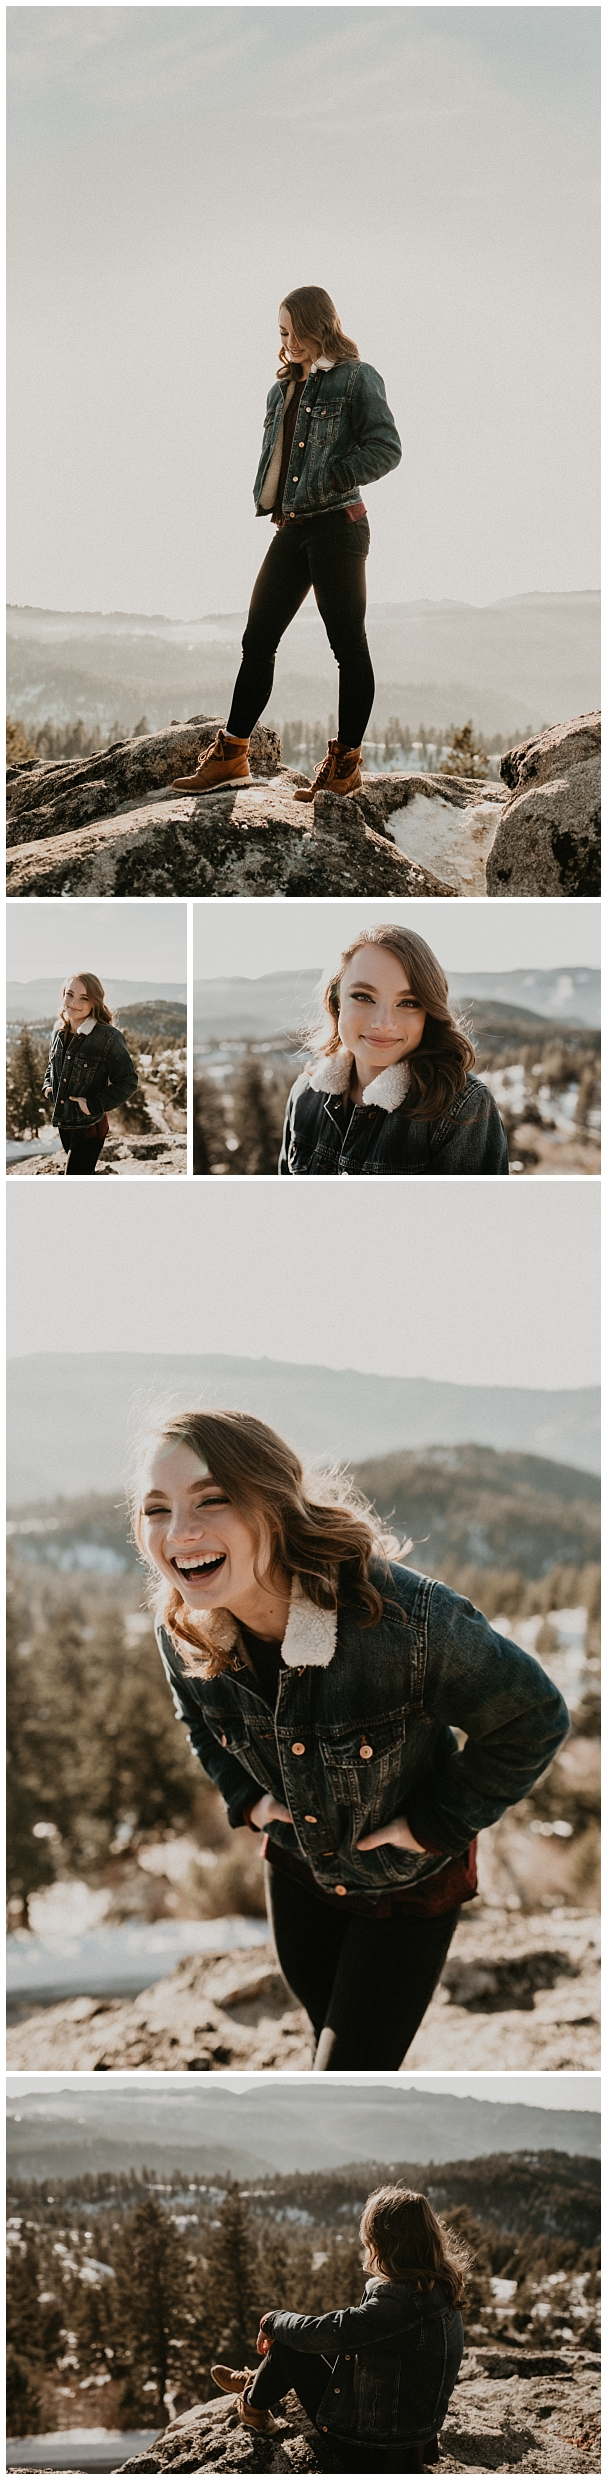 Boise Senior Photographer Meridian Photographers Makayla Madden Senior Pictures Bogus Basin Mountain Ski Resort Worship Faith Adventure Mountains Portraits Winter Senior Session